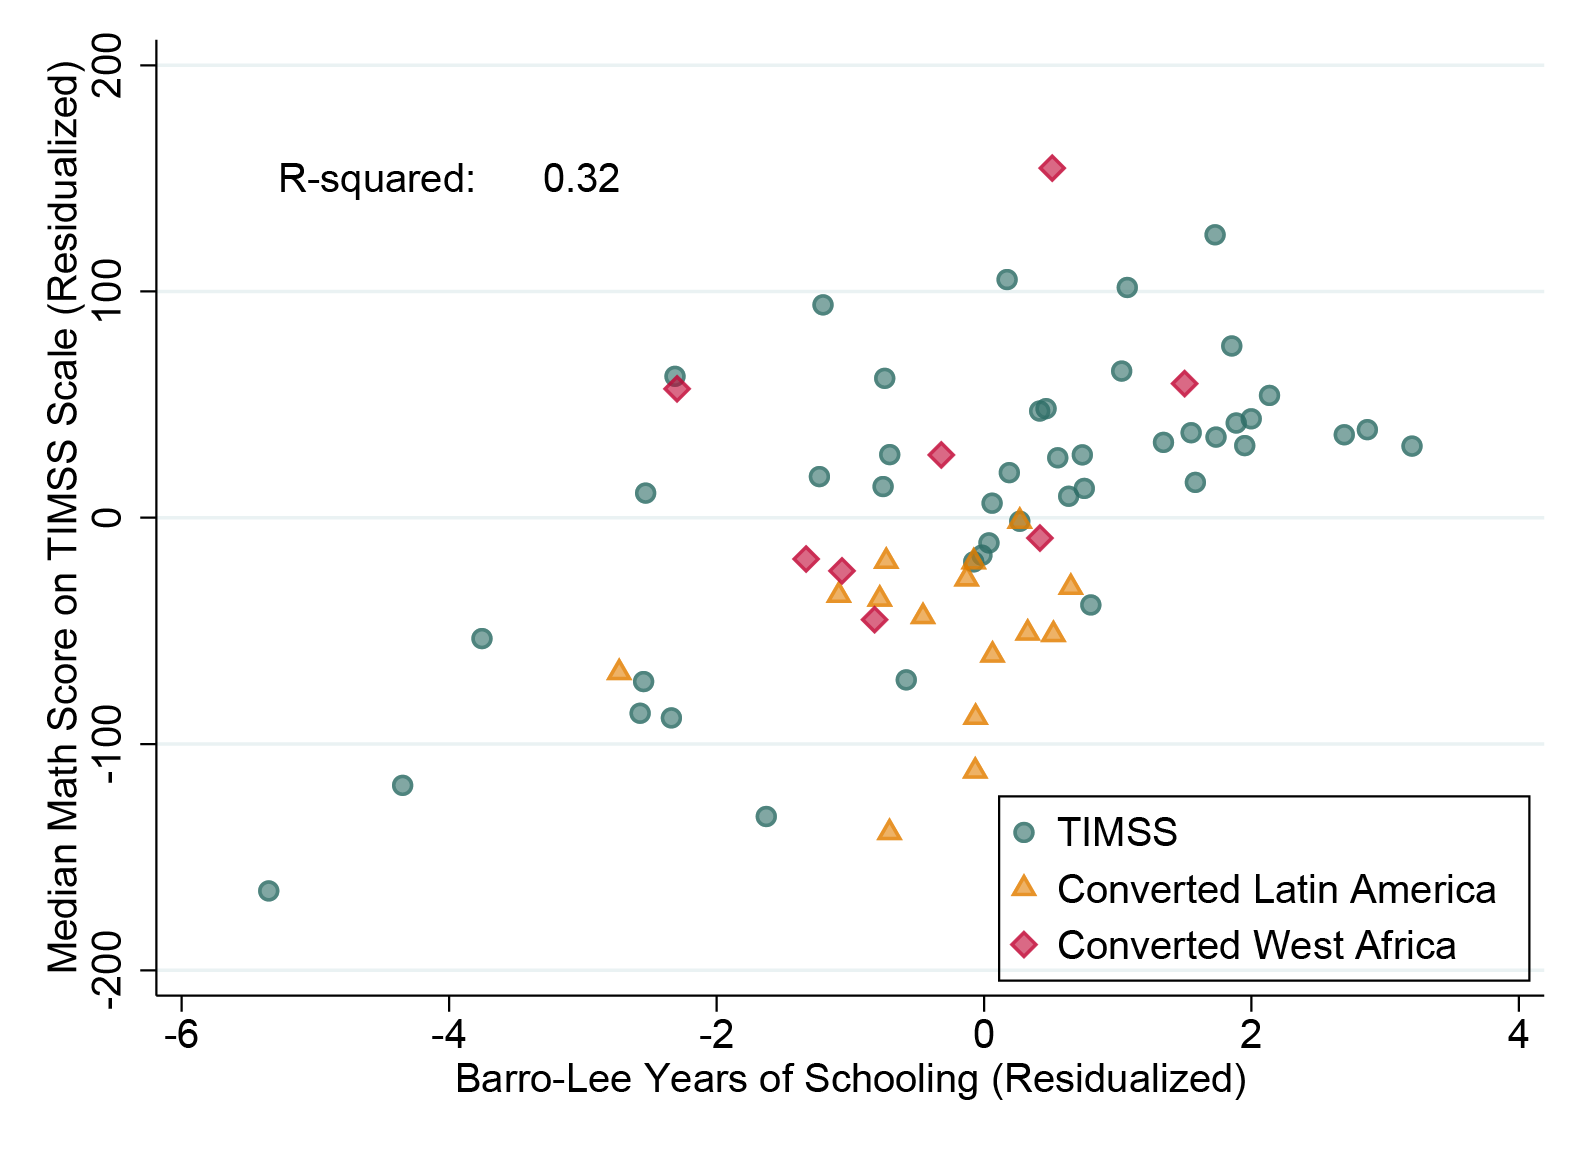 Scatter plot comparing years of schooling and TIMSS scores (and converted scores). There's a weak correlation, with an R-squared of 0.32. Converted Latin American countries tend to be lower o the test score than West African or TIMSS-taking countries